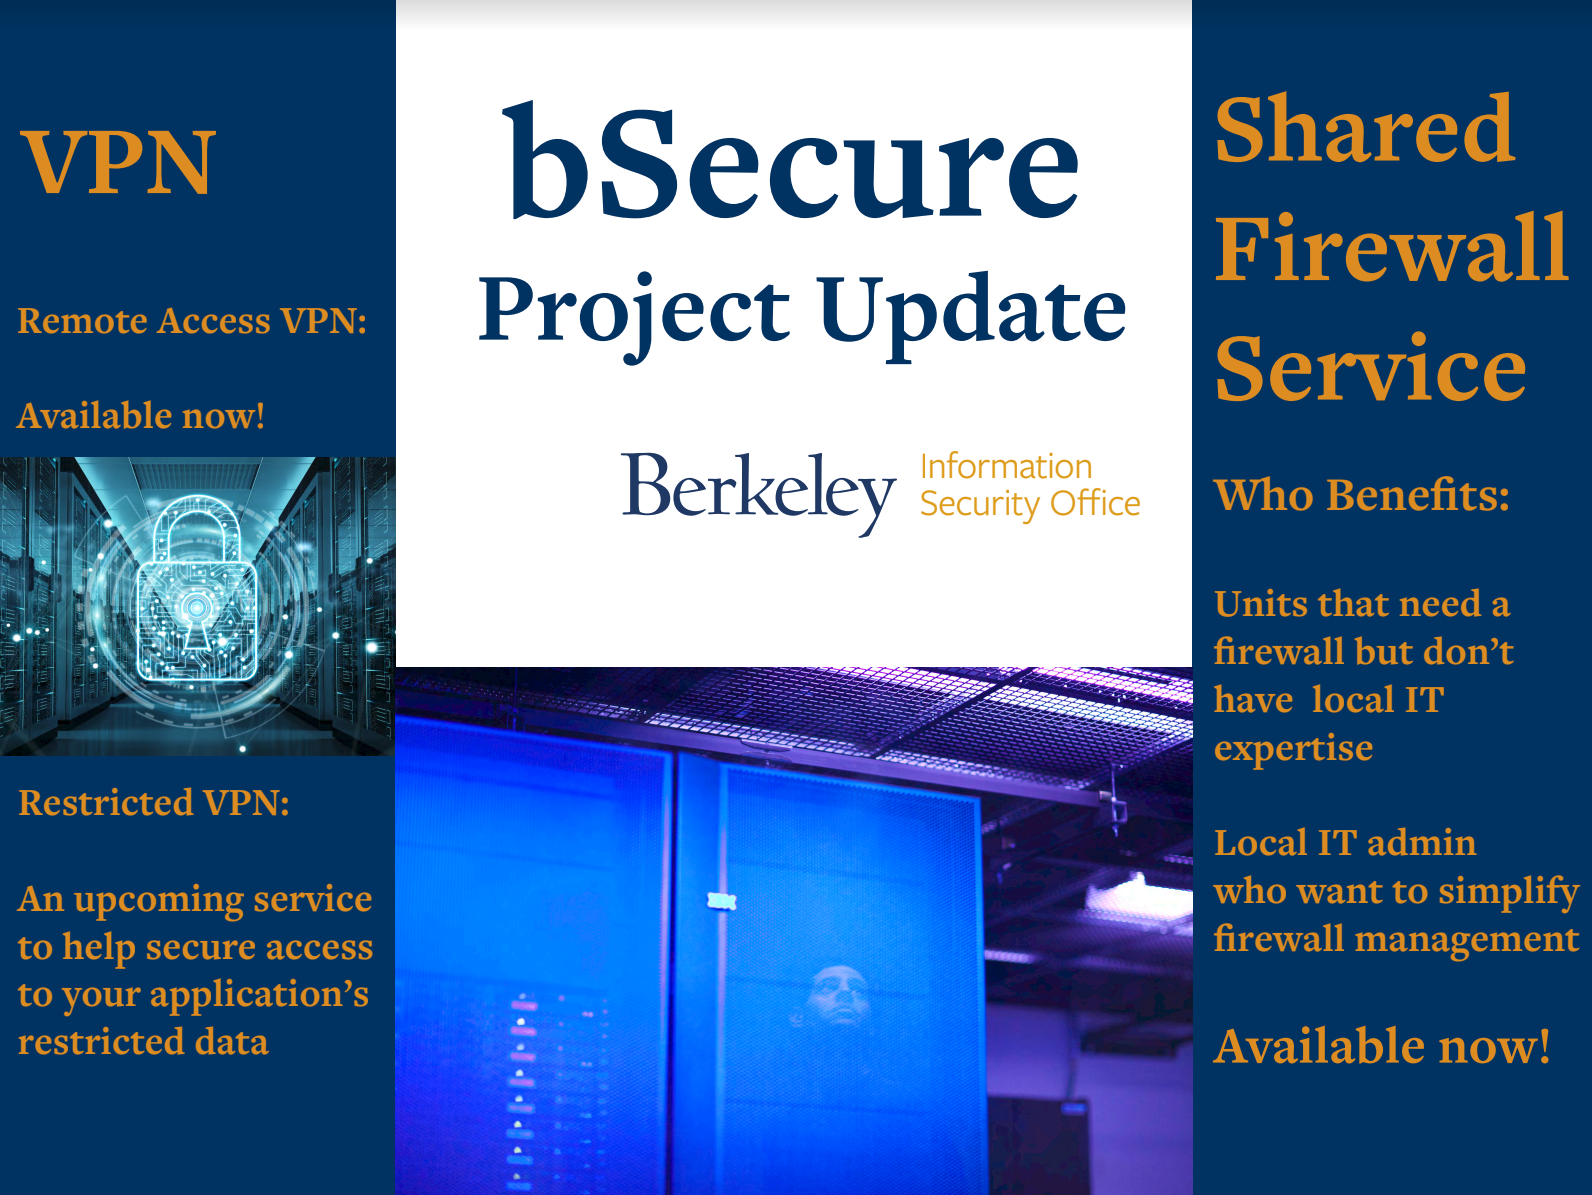 image for bSecure poster